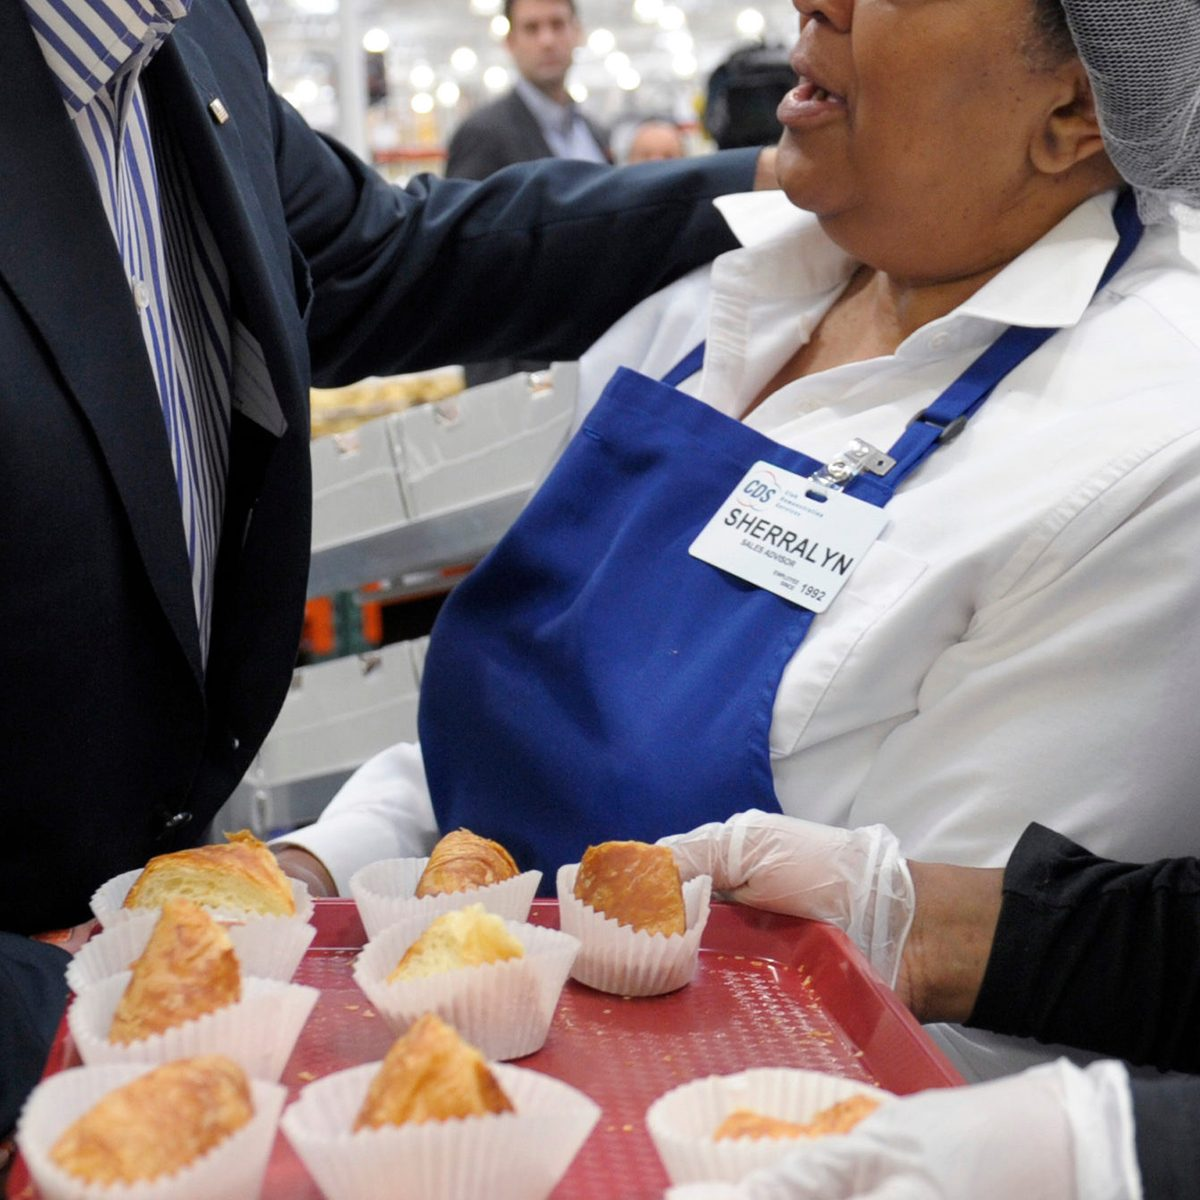 Joe Biden Vice President Joe Biden talks with Costco employees in the bakery section of the store while shopping at a Costco in Washington